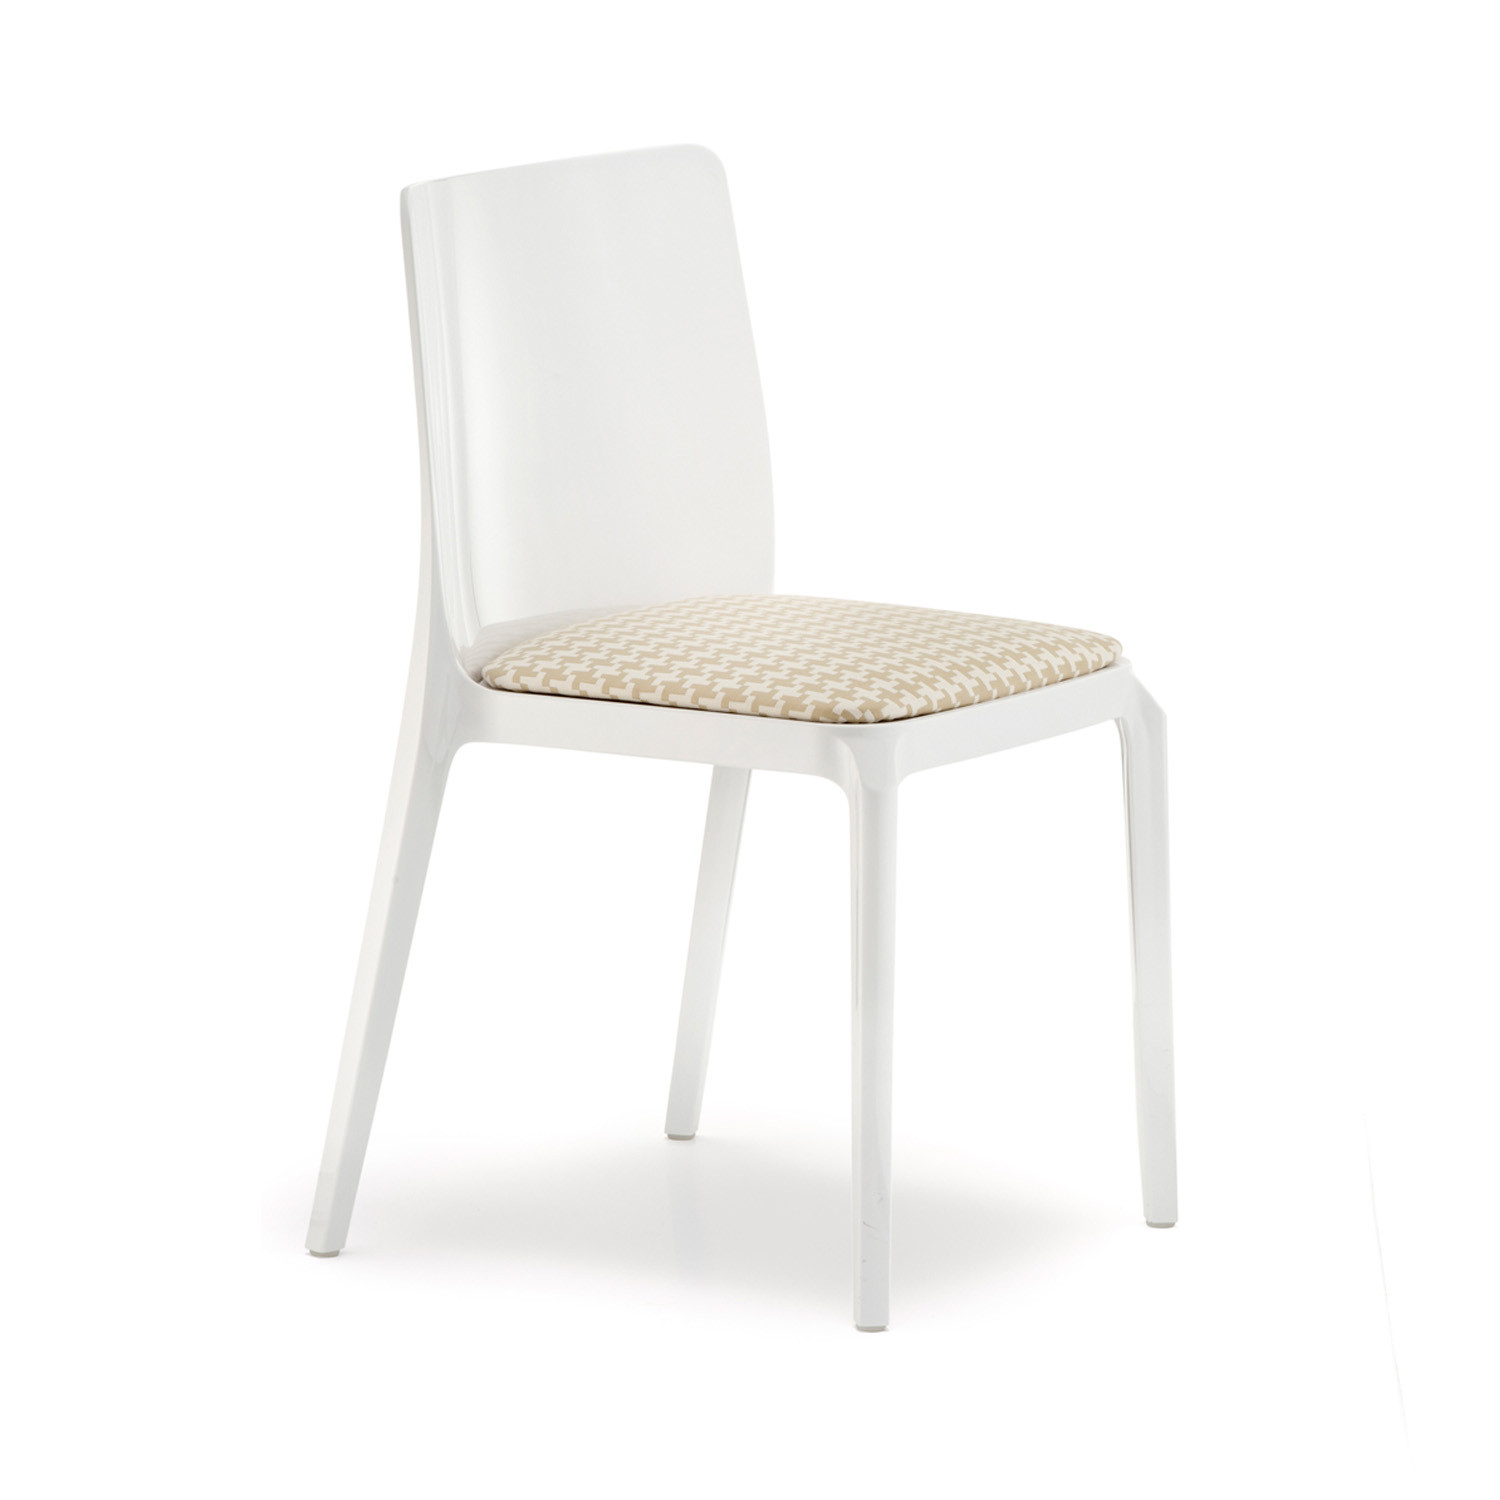 Blitz Dining Chairs